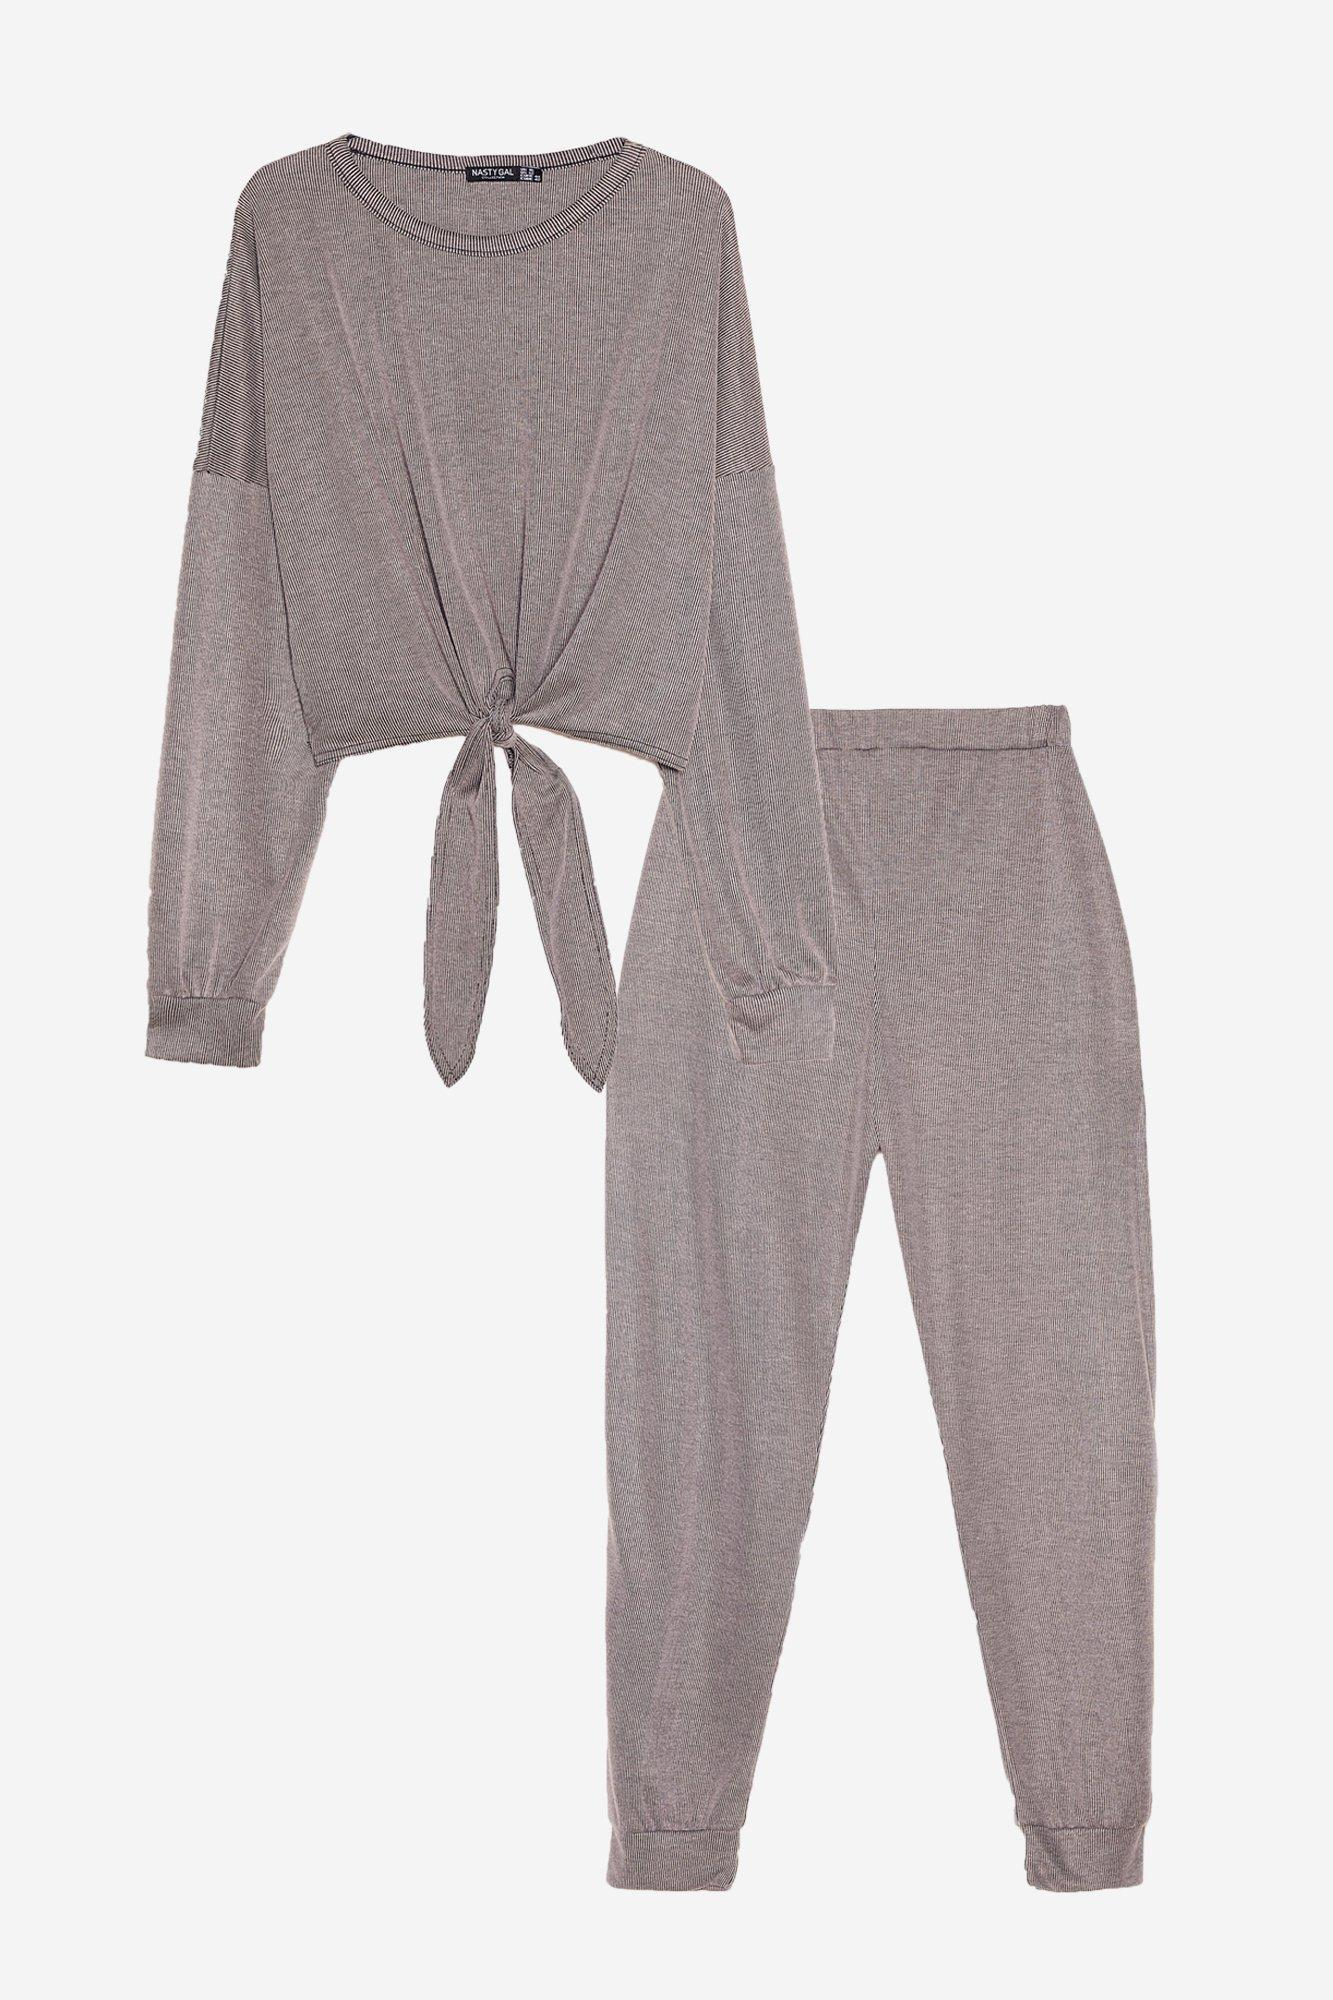 Tie Miss You Baby Plus Ribbed Top and Jogger Set 14